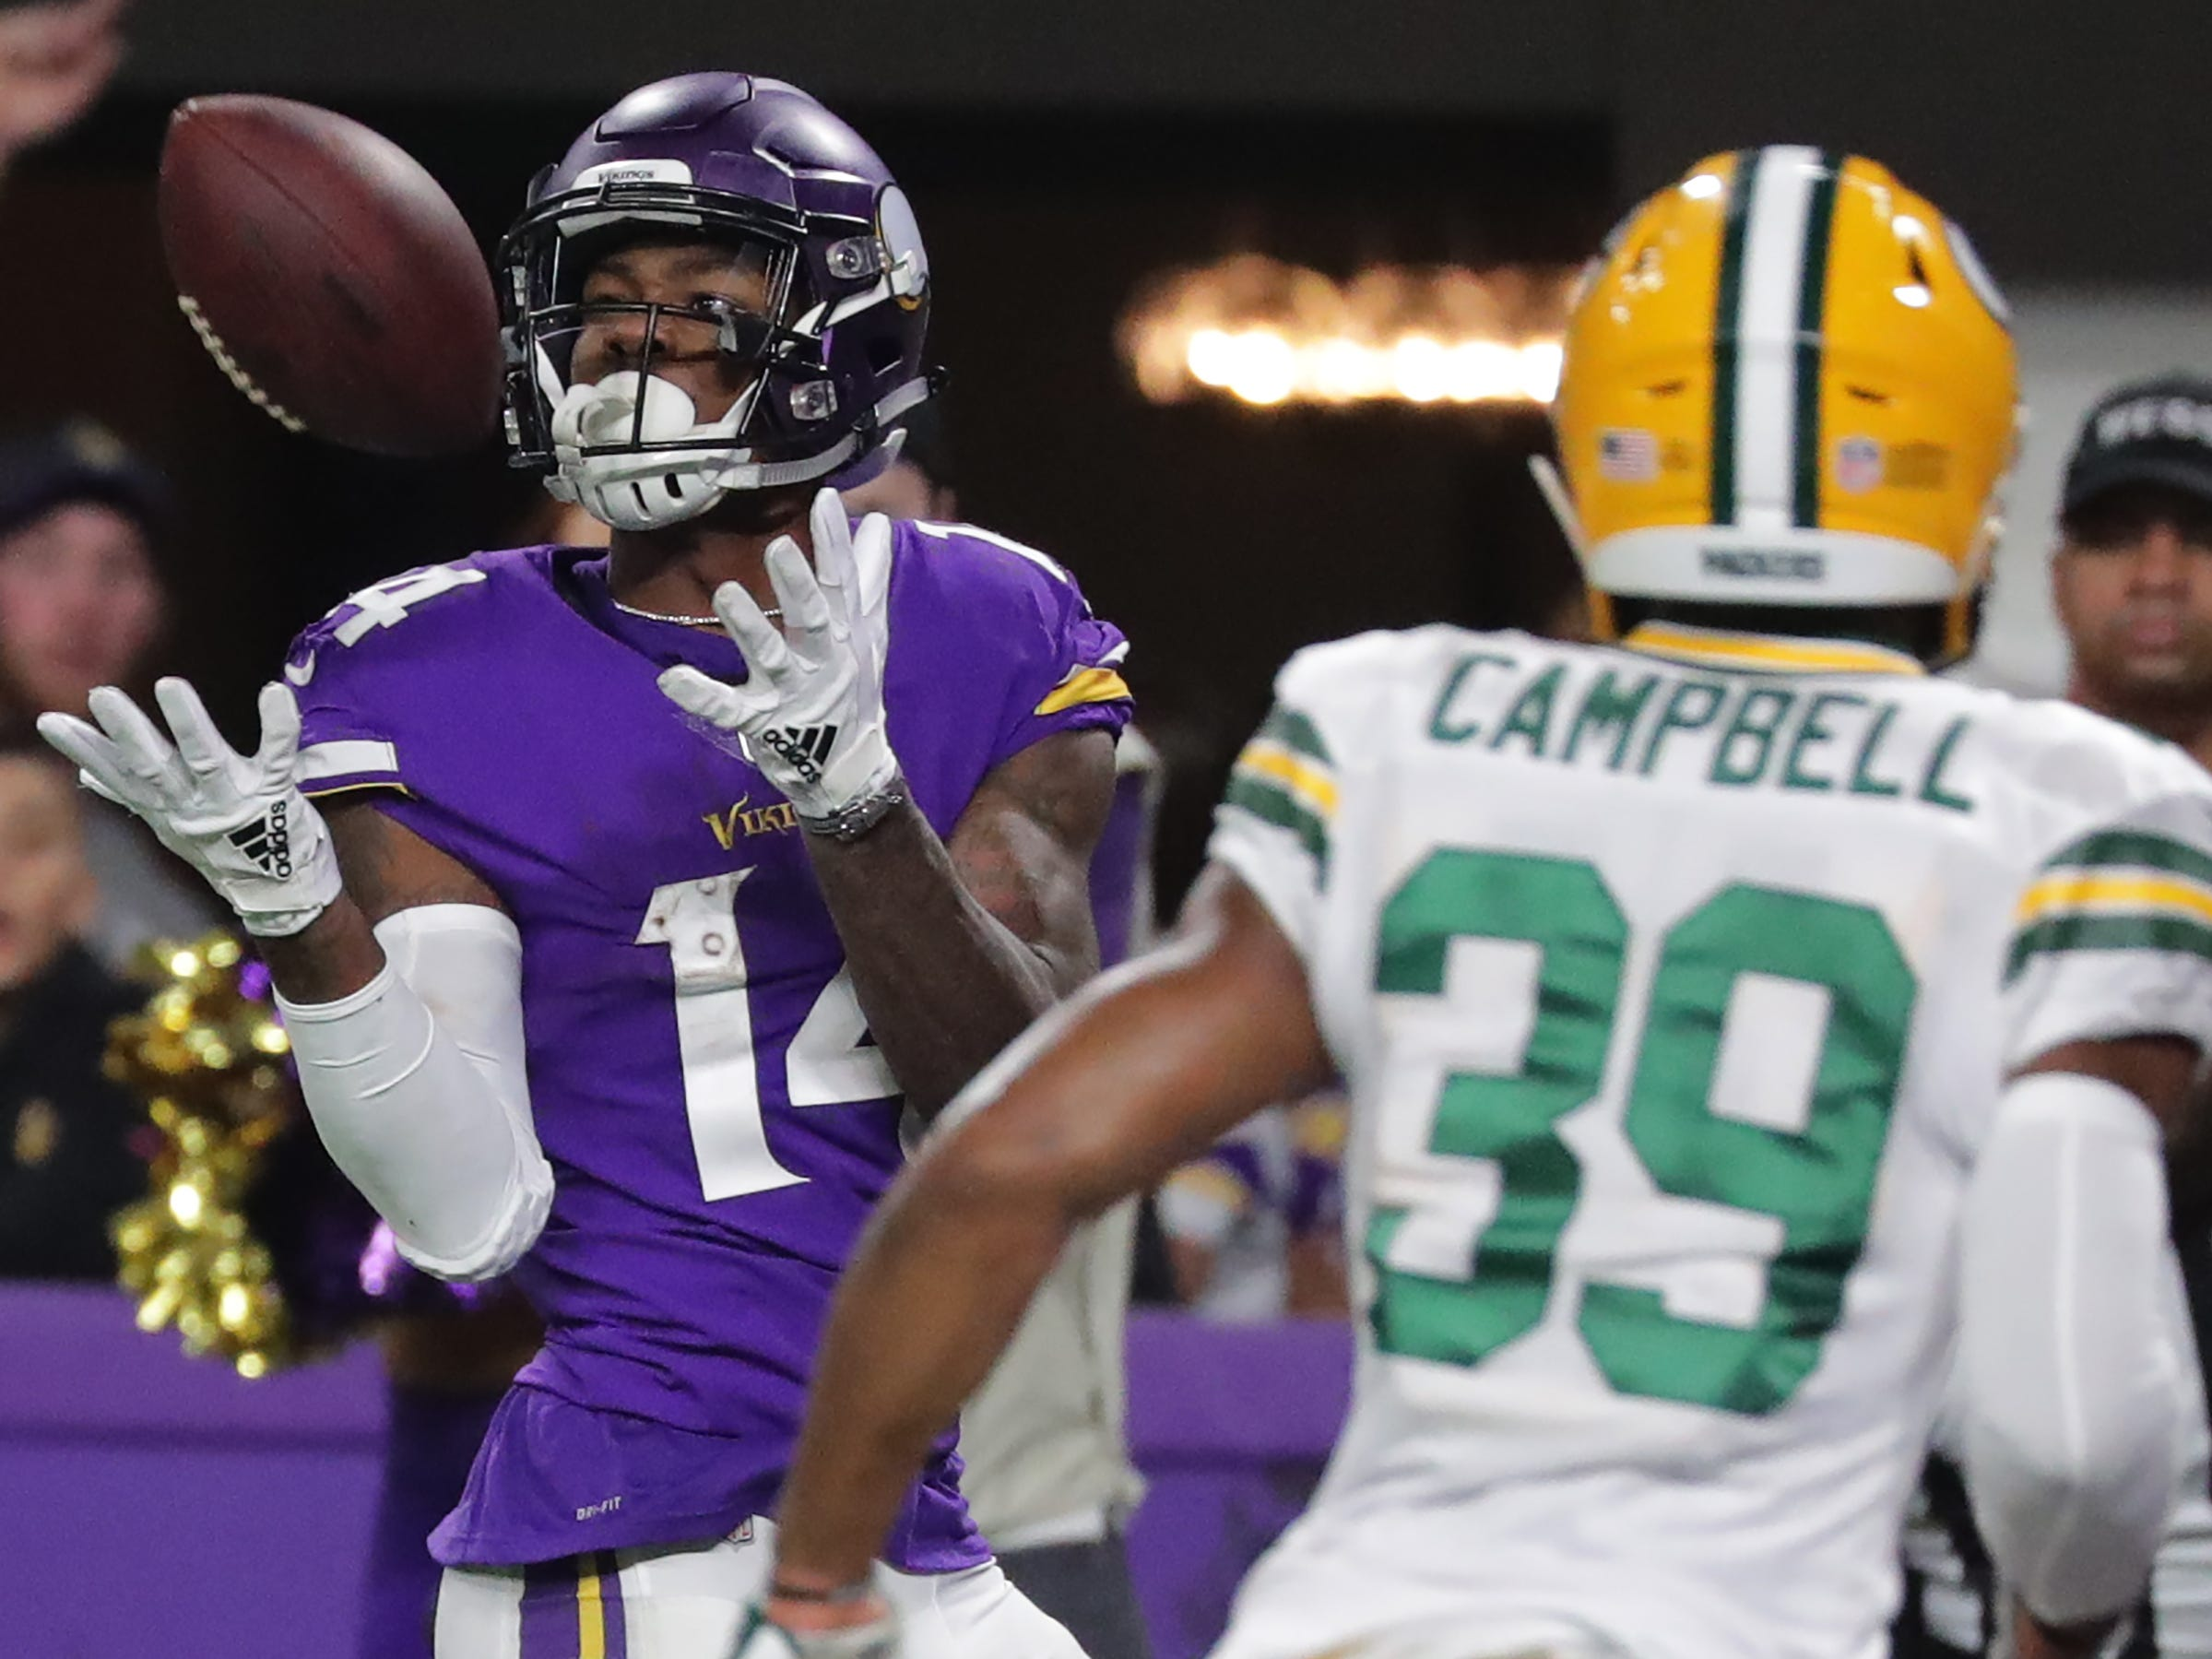 Minnesota Vikings wide receiver Stefon Diggs (14) makes a  30-yard touchdown reception during the second quarter of their game against the Green Bay Packers Sunday, November 25, 2018 at U.S. Bank Stadium in Minneapolis, Minn.